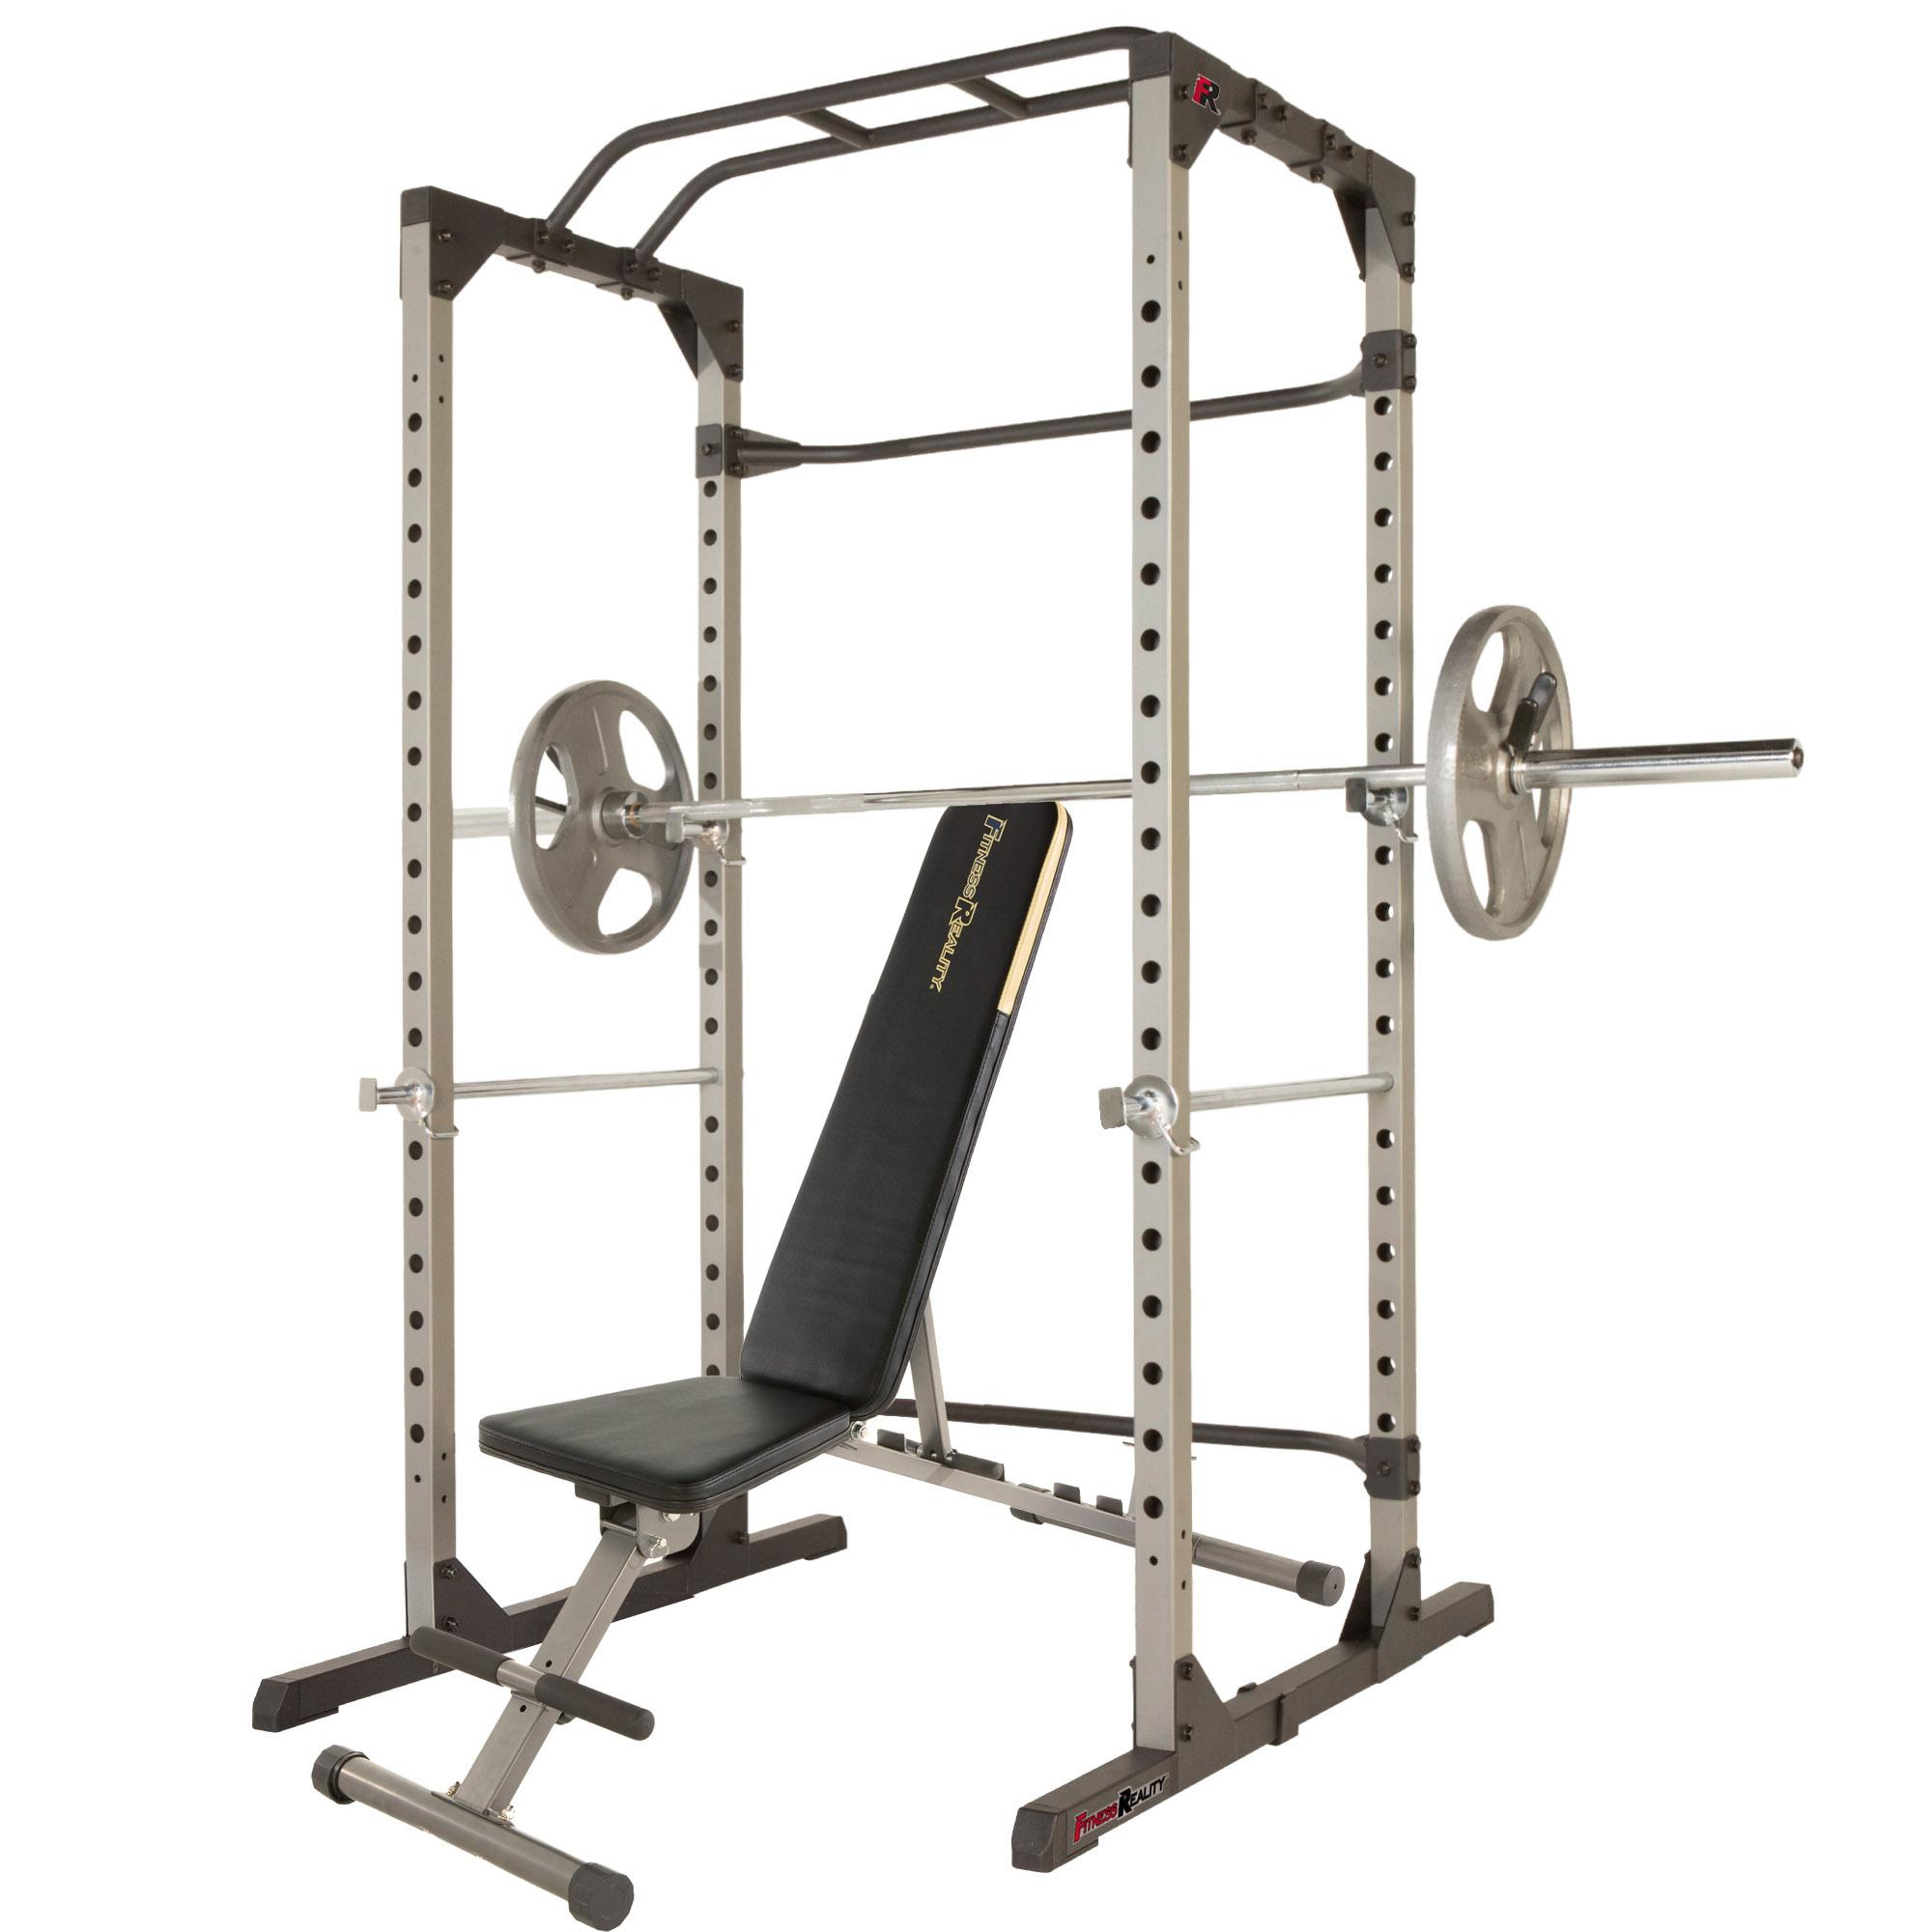 Squat Rack And Bench Pres Combo 013 - Squat Rack And Bench Pres Combo